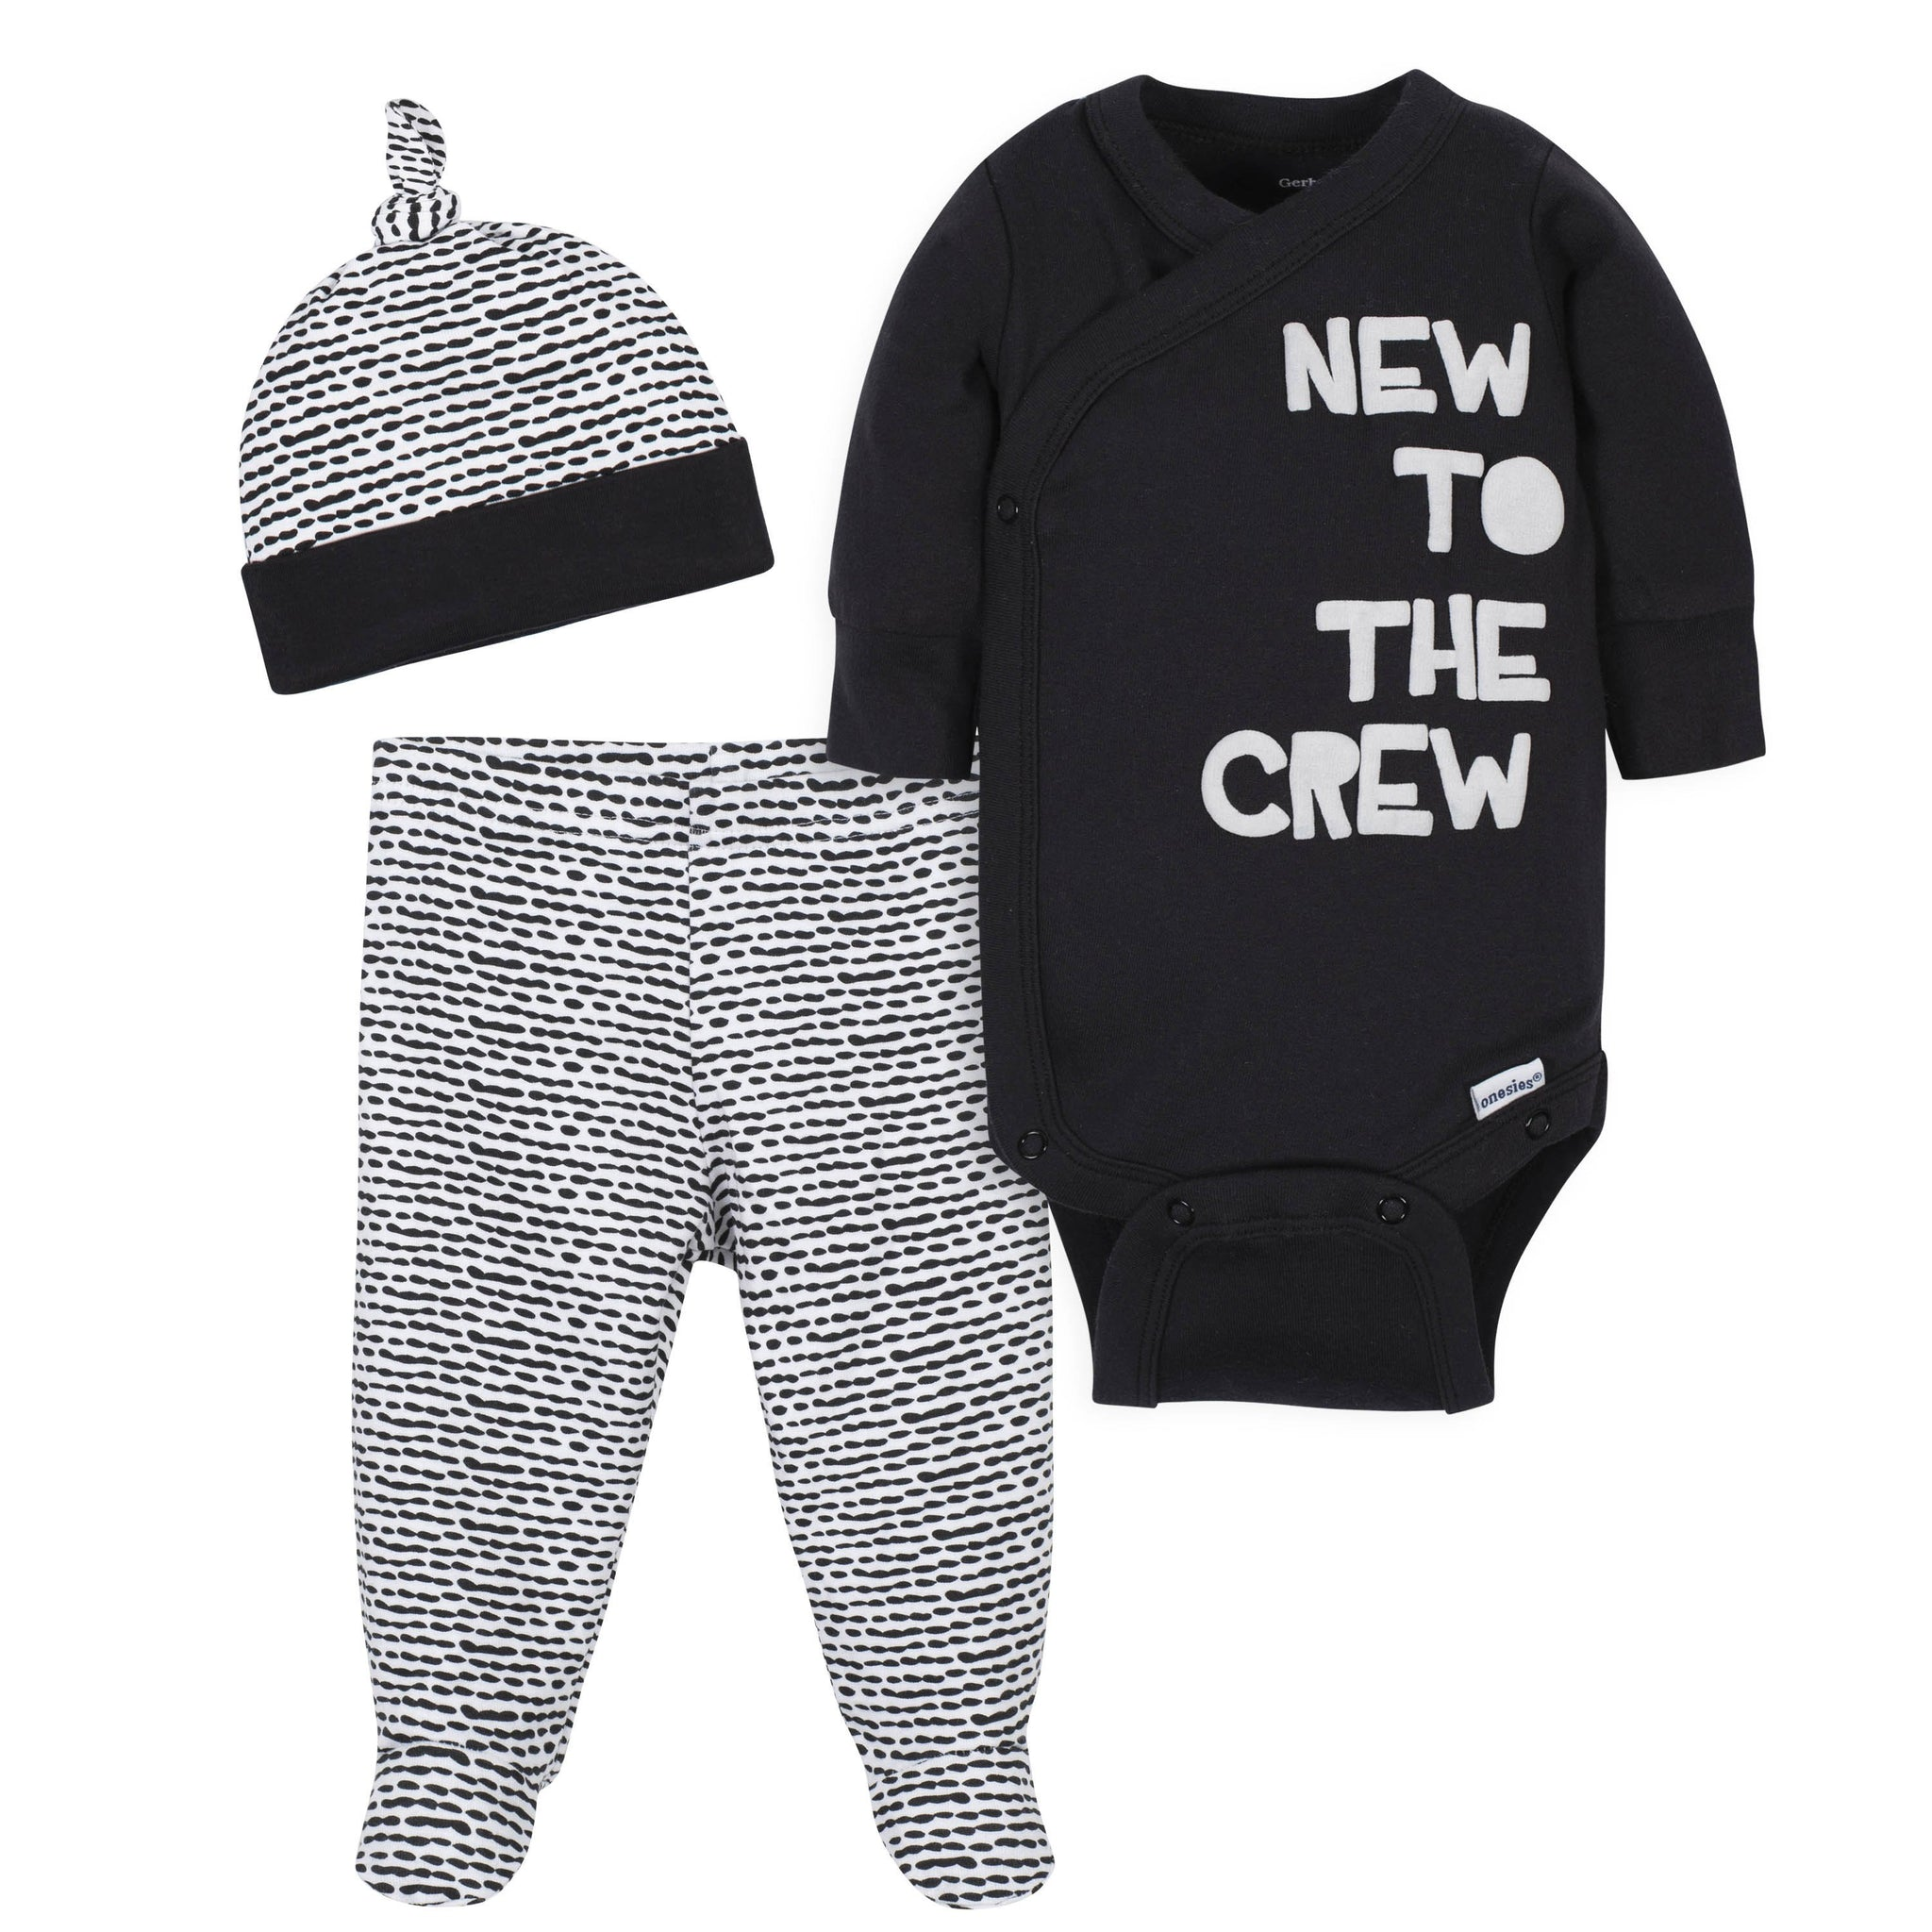 Gerber® 3-Piece Baby Boys New to the Crew Onesies Bodysuit, Pant, and Cap Set-Gerber Childrenswear